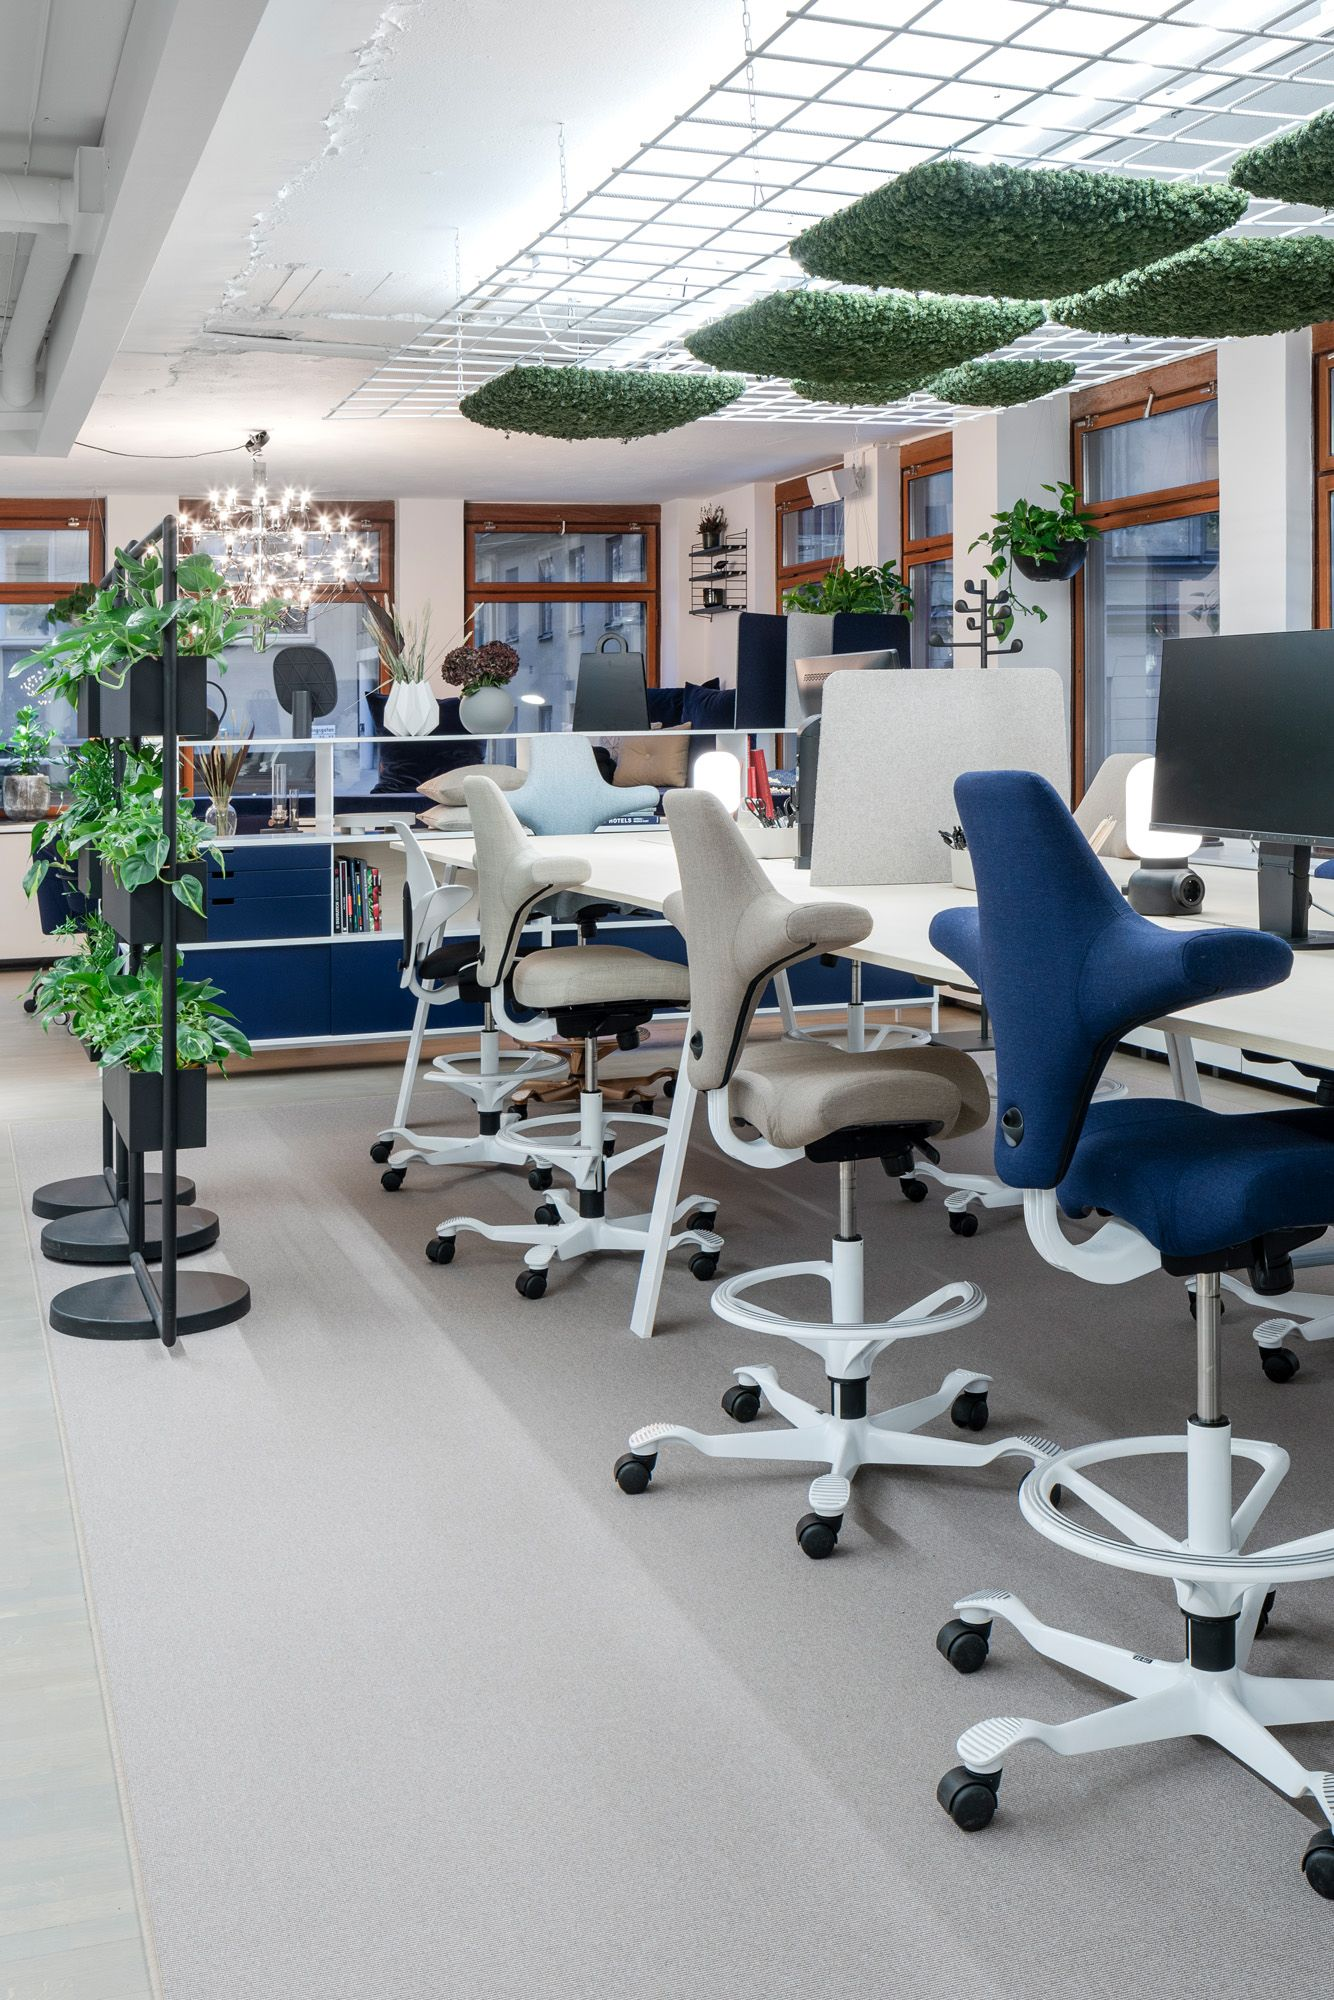 Task Chair Capisco 8106 From Hag At Senab S Stockholm Office Inspired By A Horseback Rider S Posture Its Pioneering Saddle Seat Mobelideer Inredning Mobler